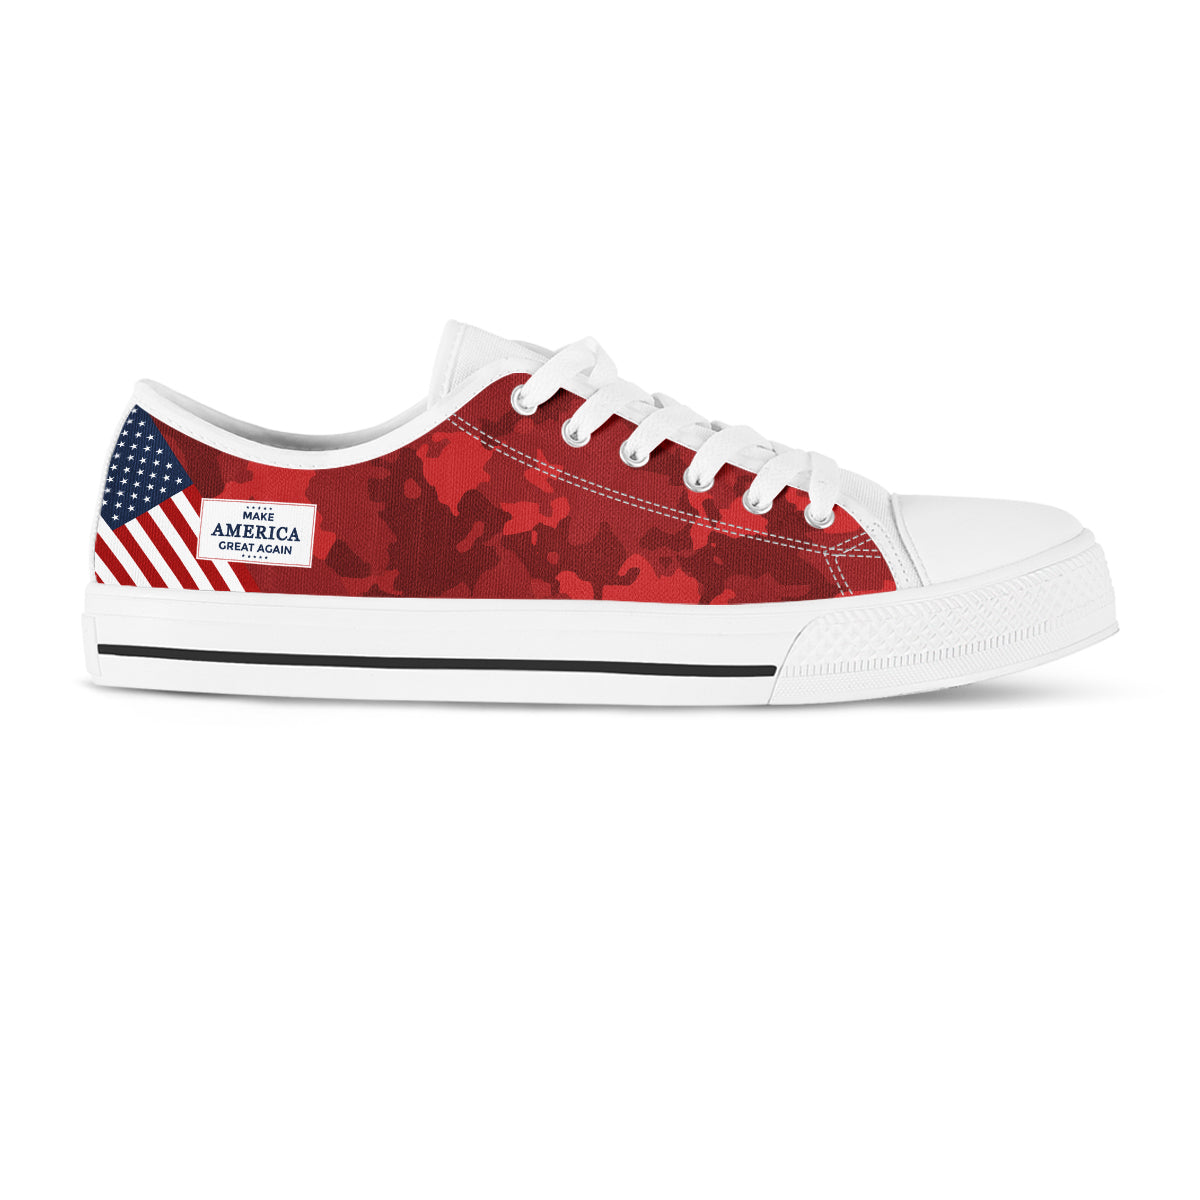 MAGA Red Camo - Women's Low Top Shoes